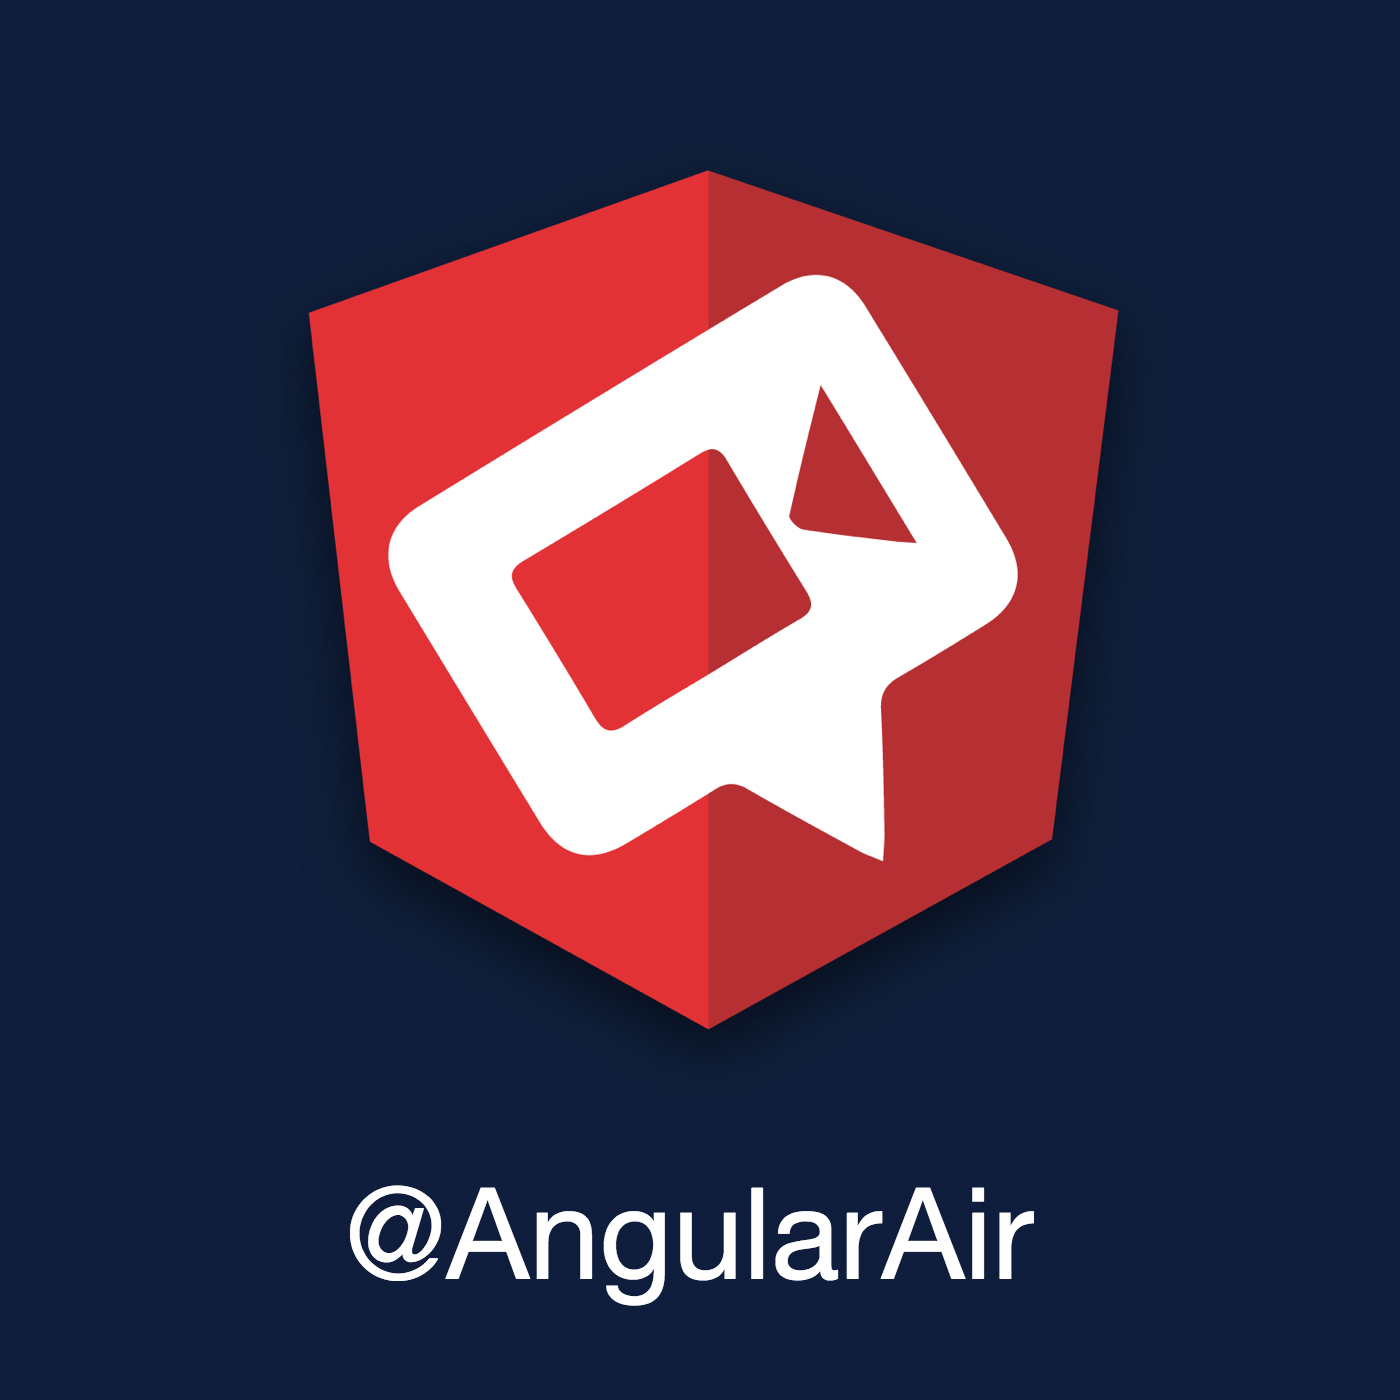 Angular Air